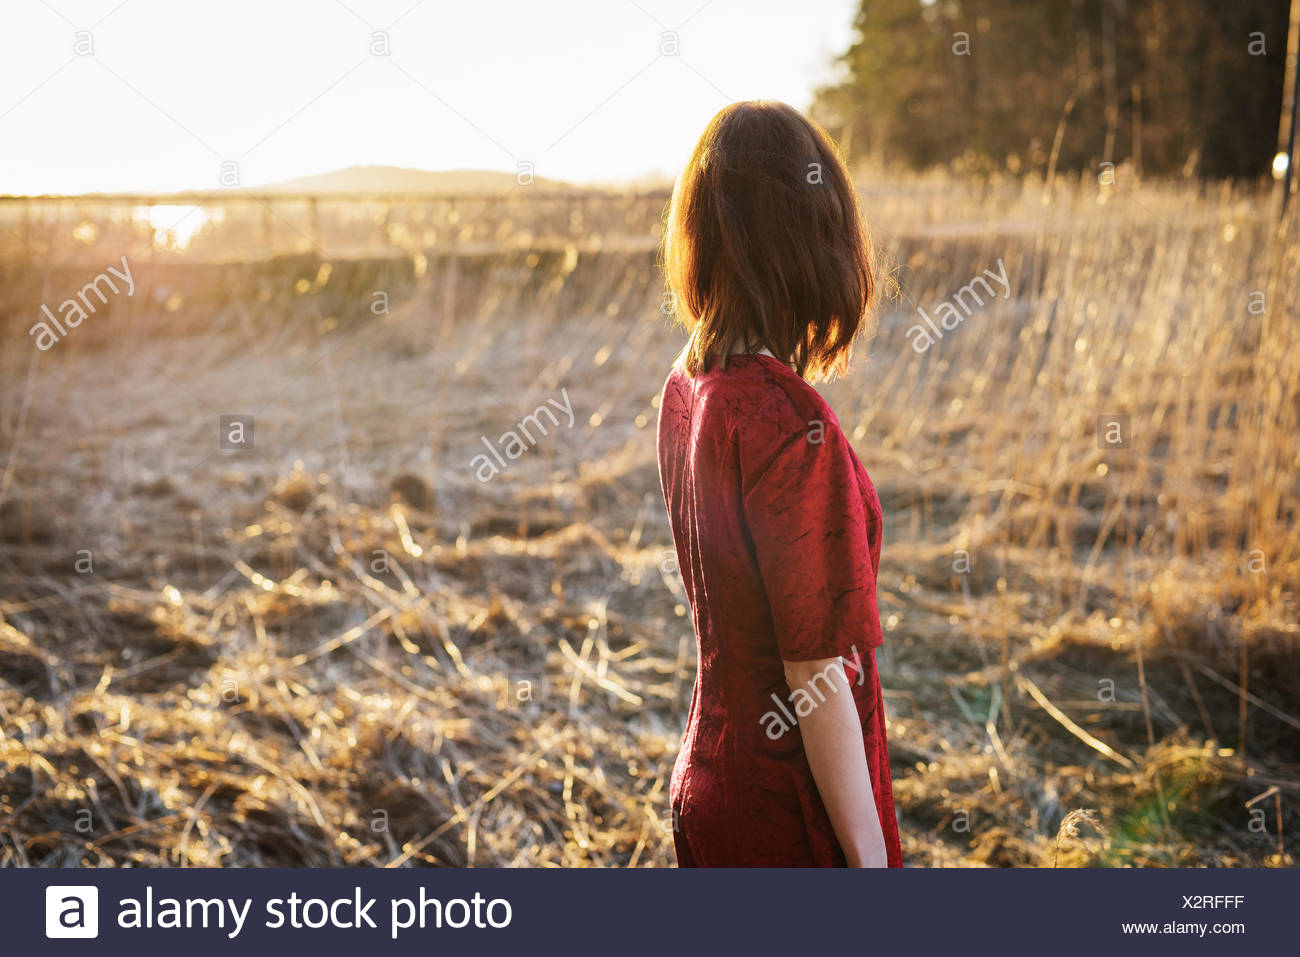 Finland, Varsinais-Suomi, Young woman standing in field - Stock Image